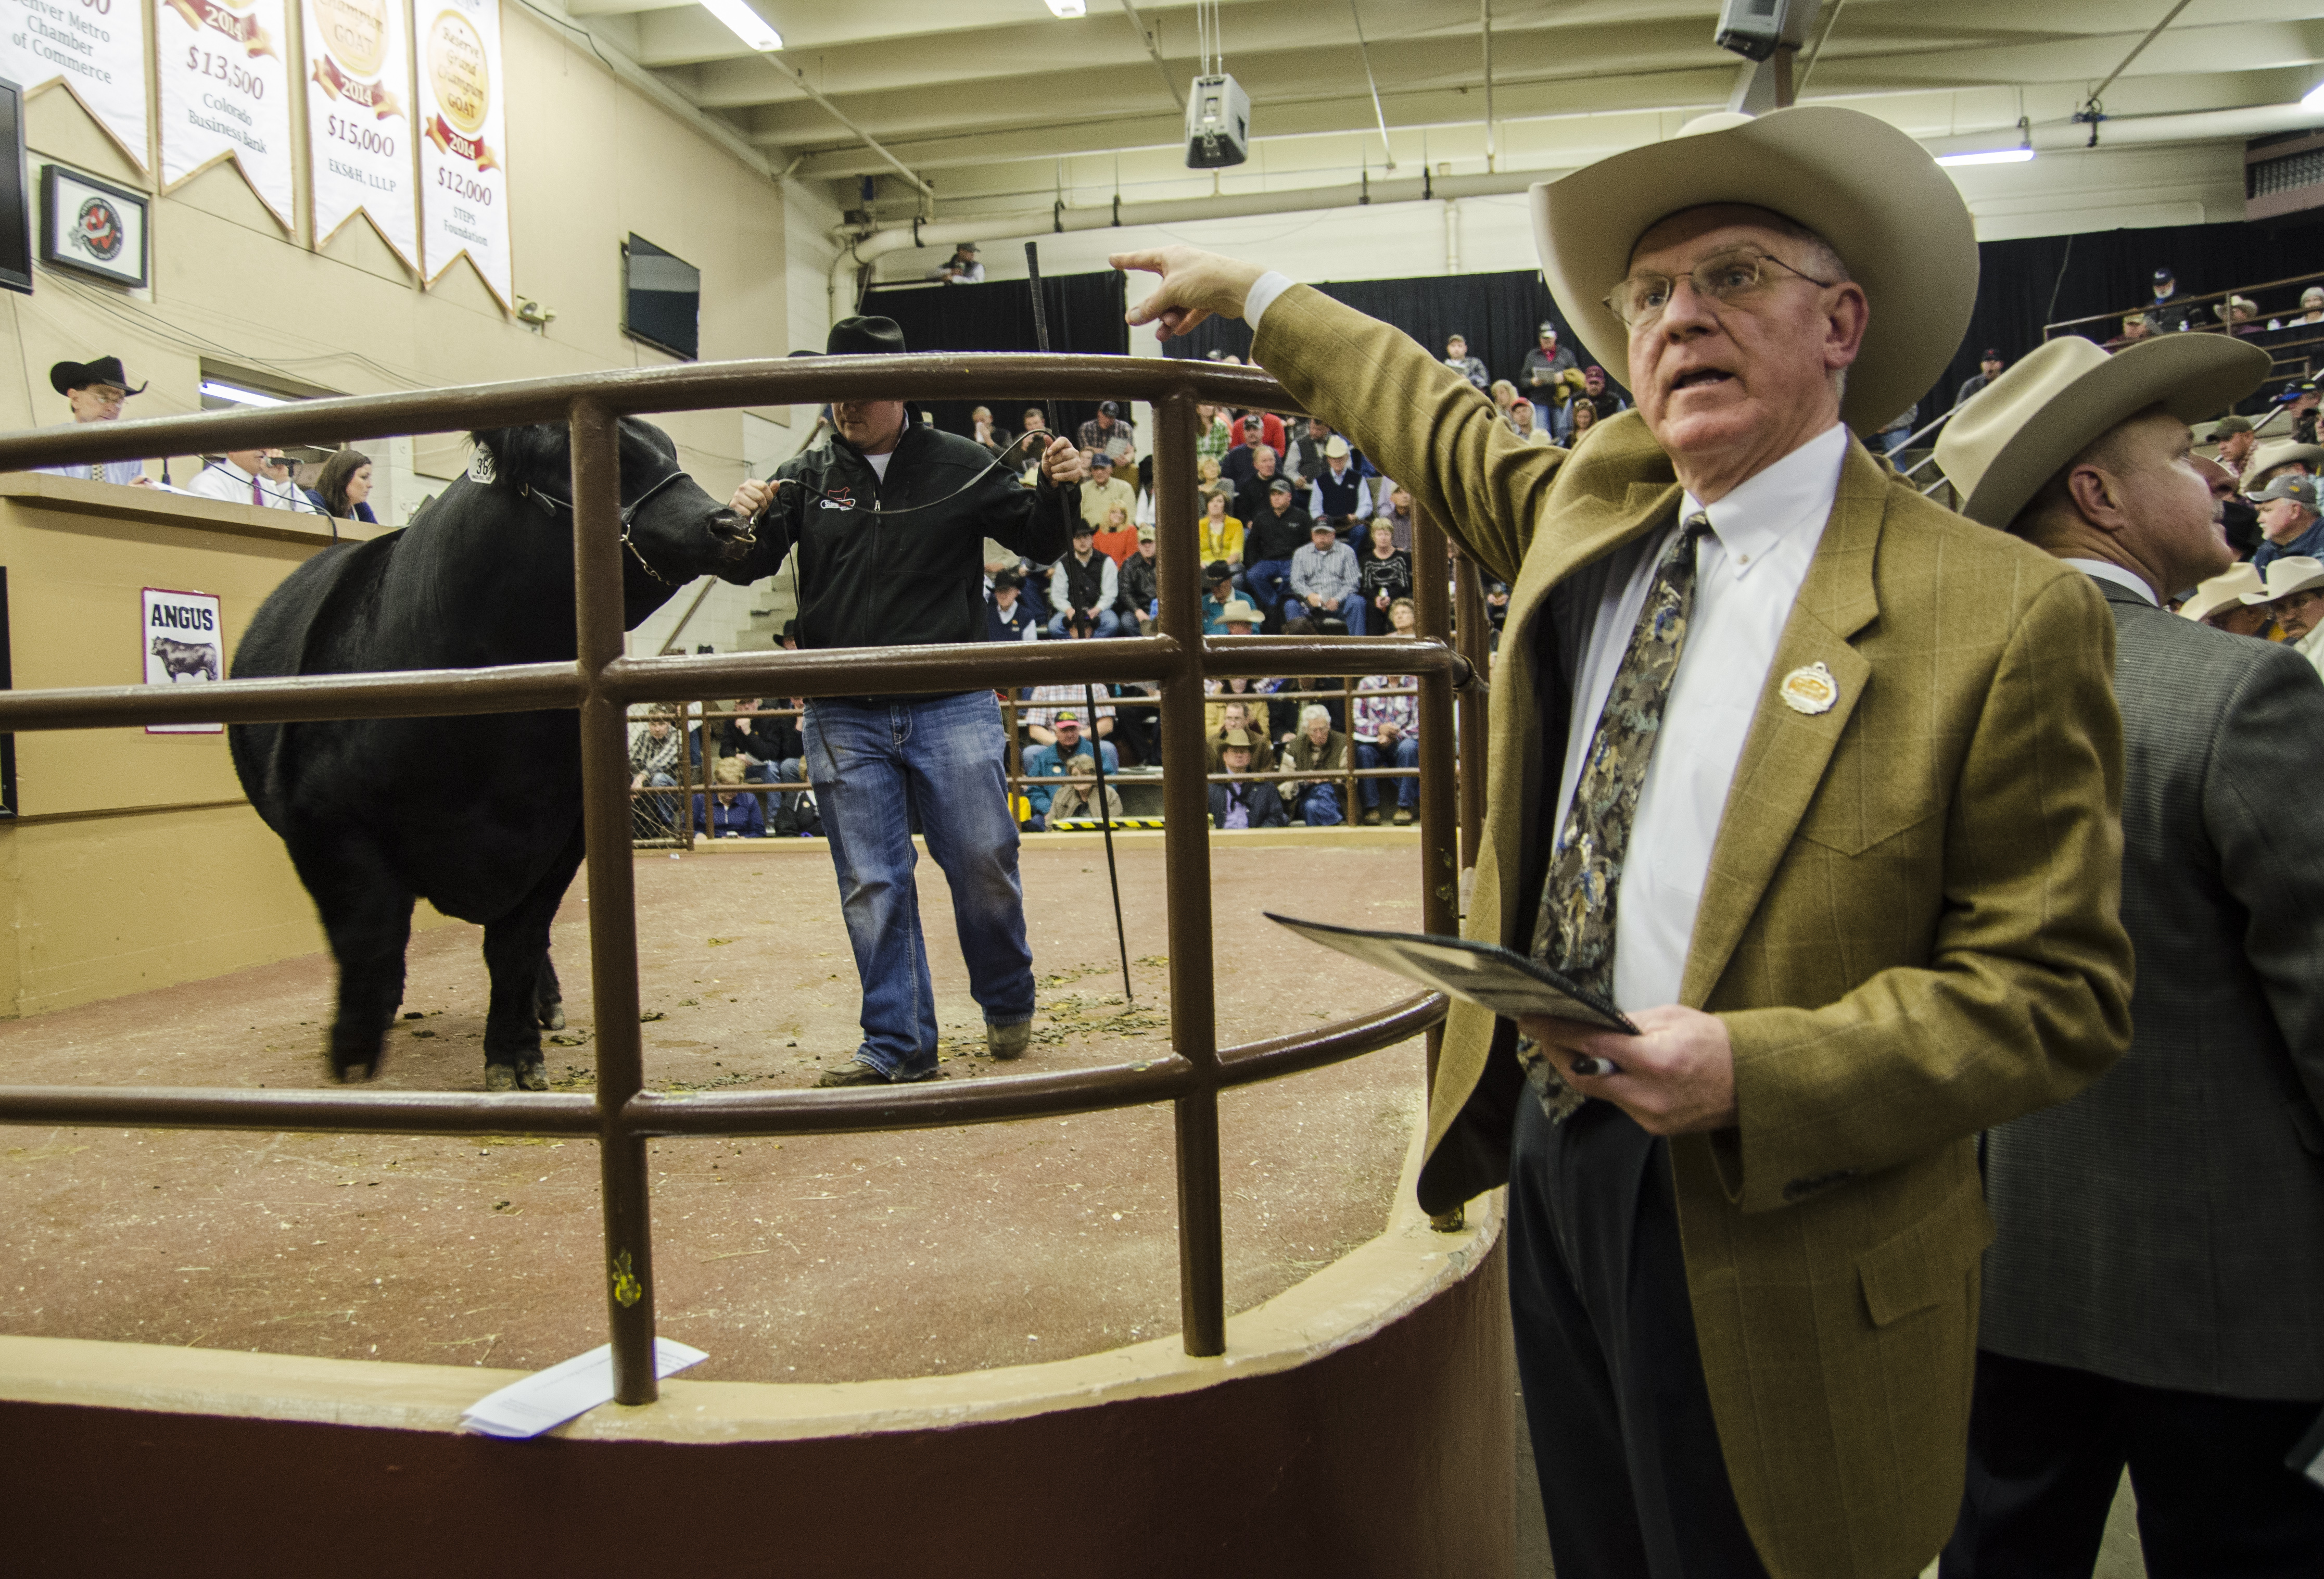 Photo: Terry Cotton at steer auction